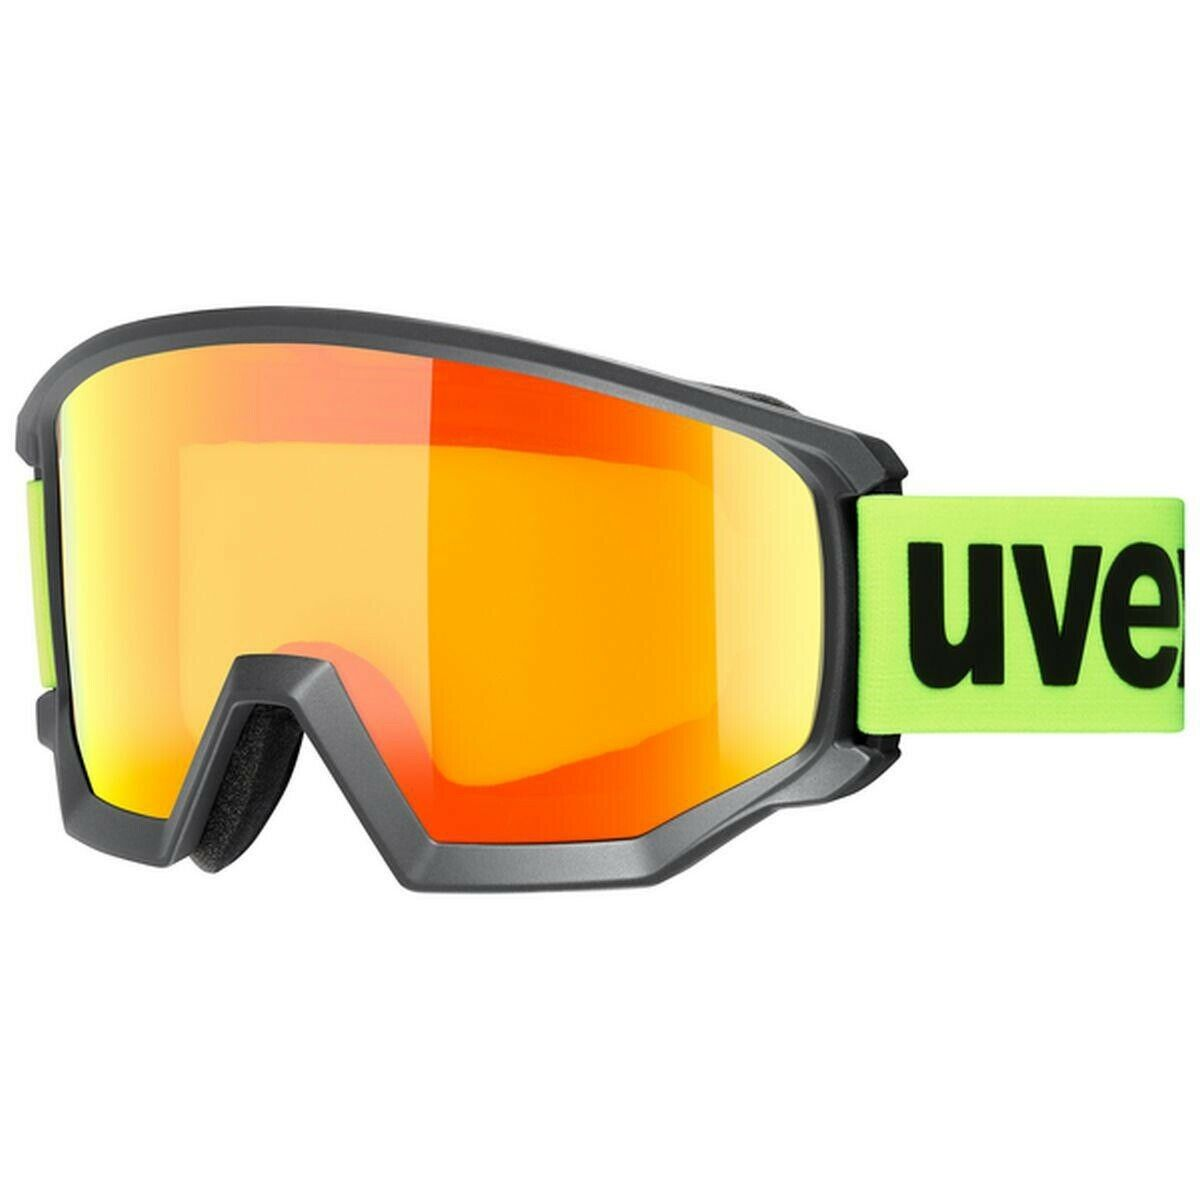 Uvex ATHLETIC CV sci, arancione